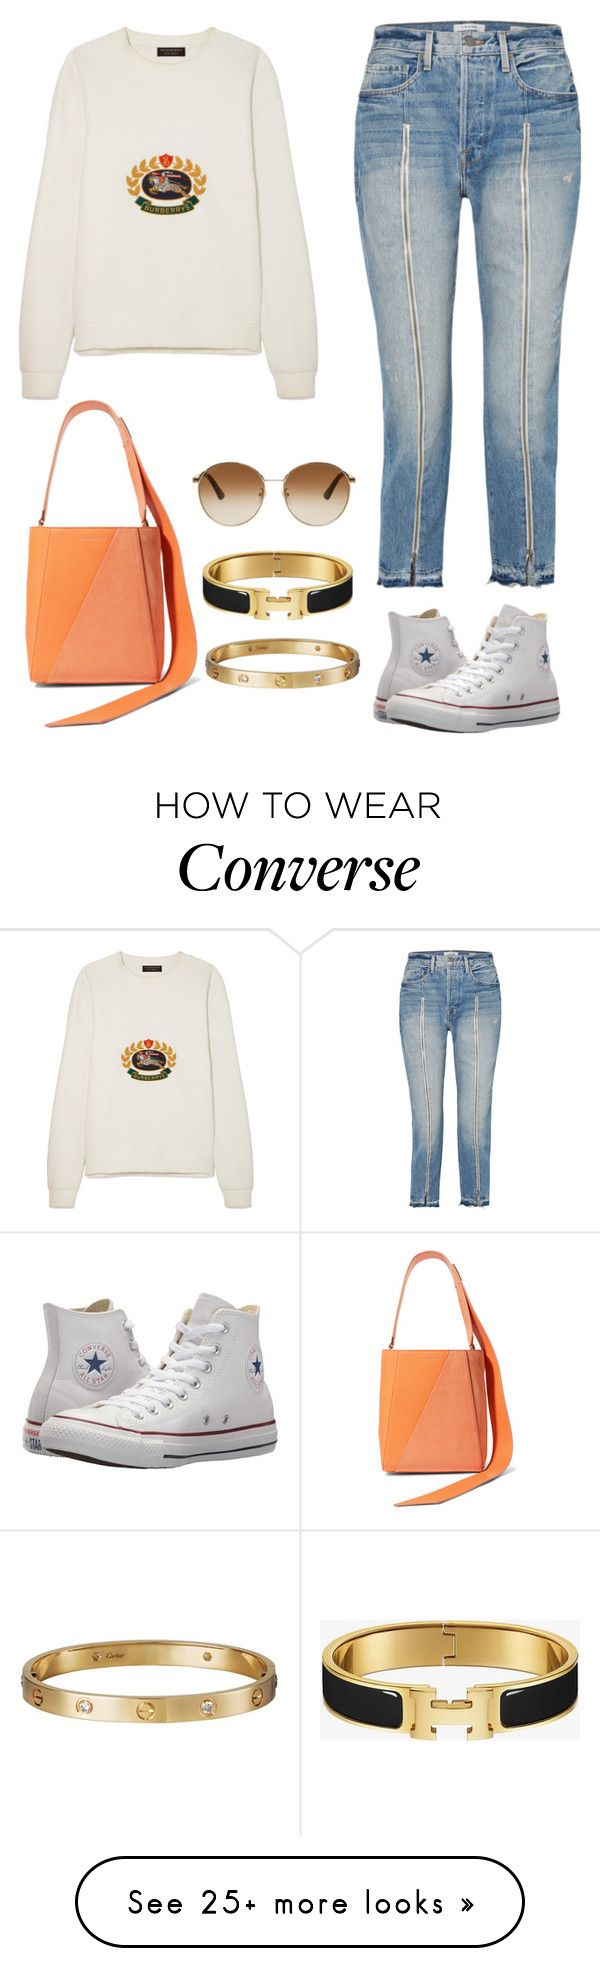 """"" by millylatu on Polyvore featuring Calvin Klein 205W39NYC, Frame, Burberry, Converse, Gucci and Cartier"